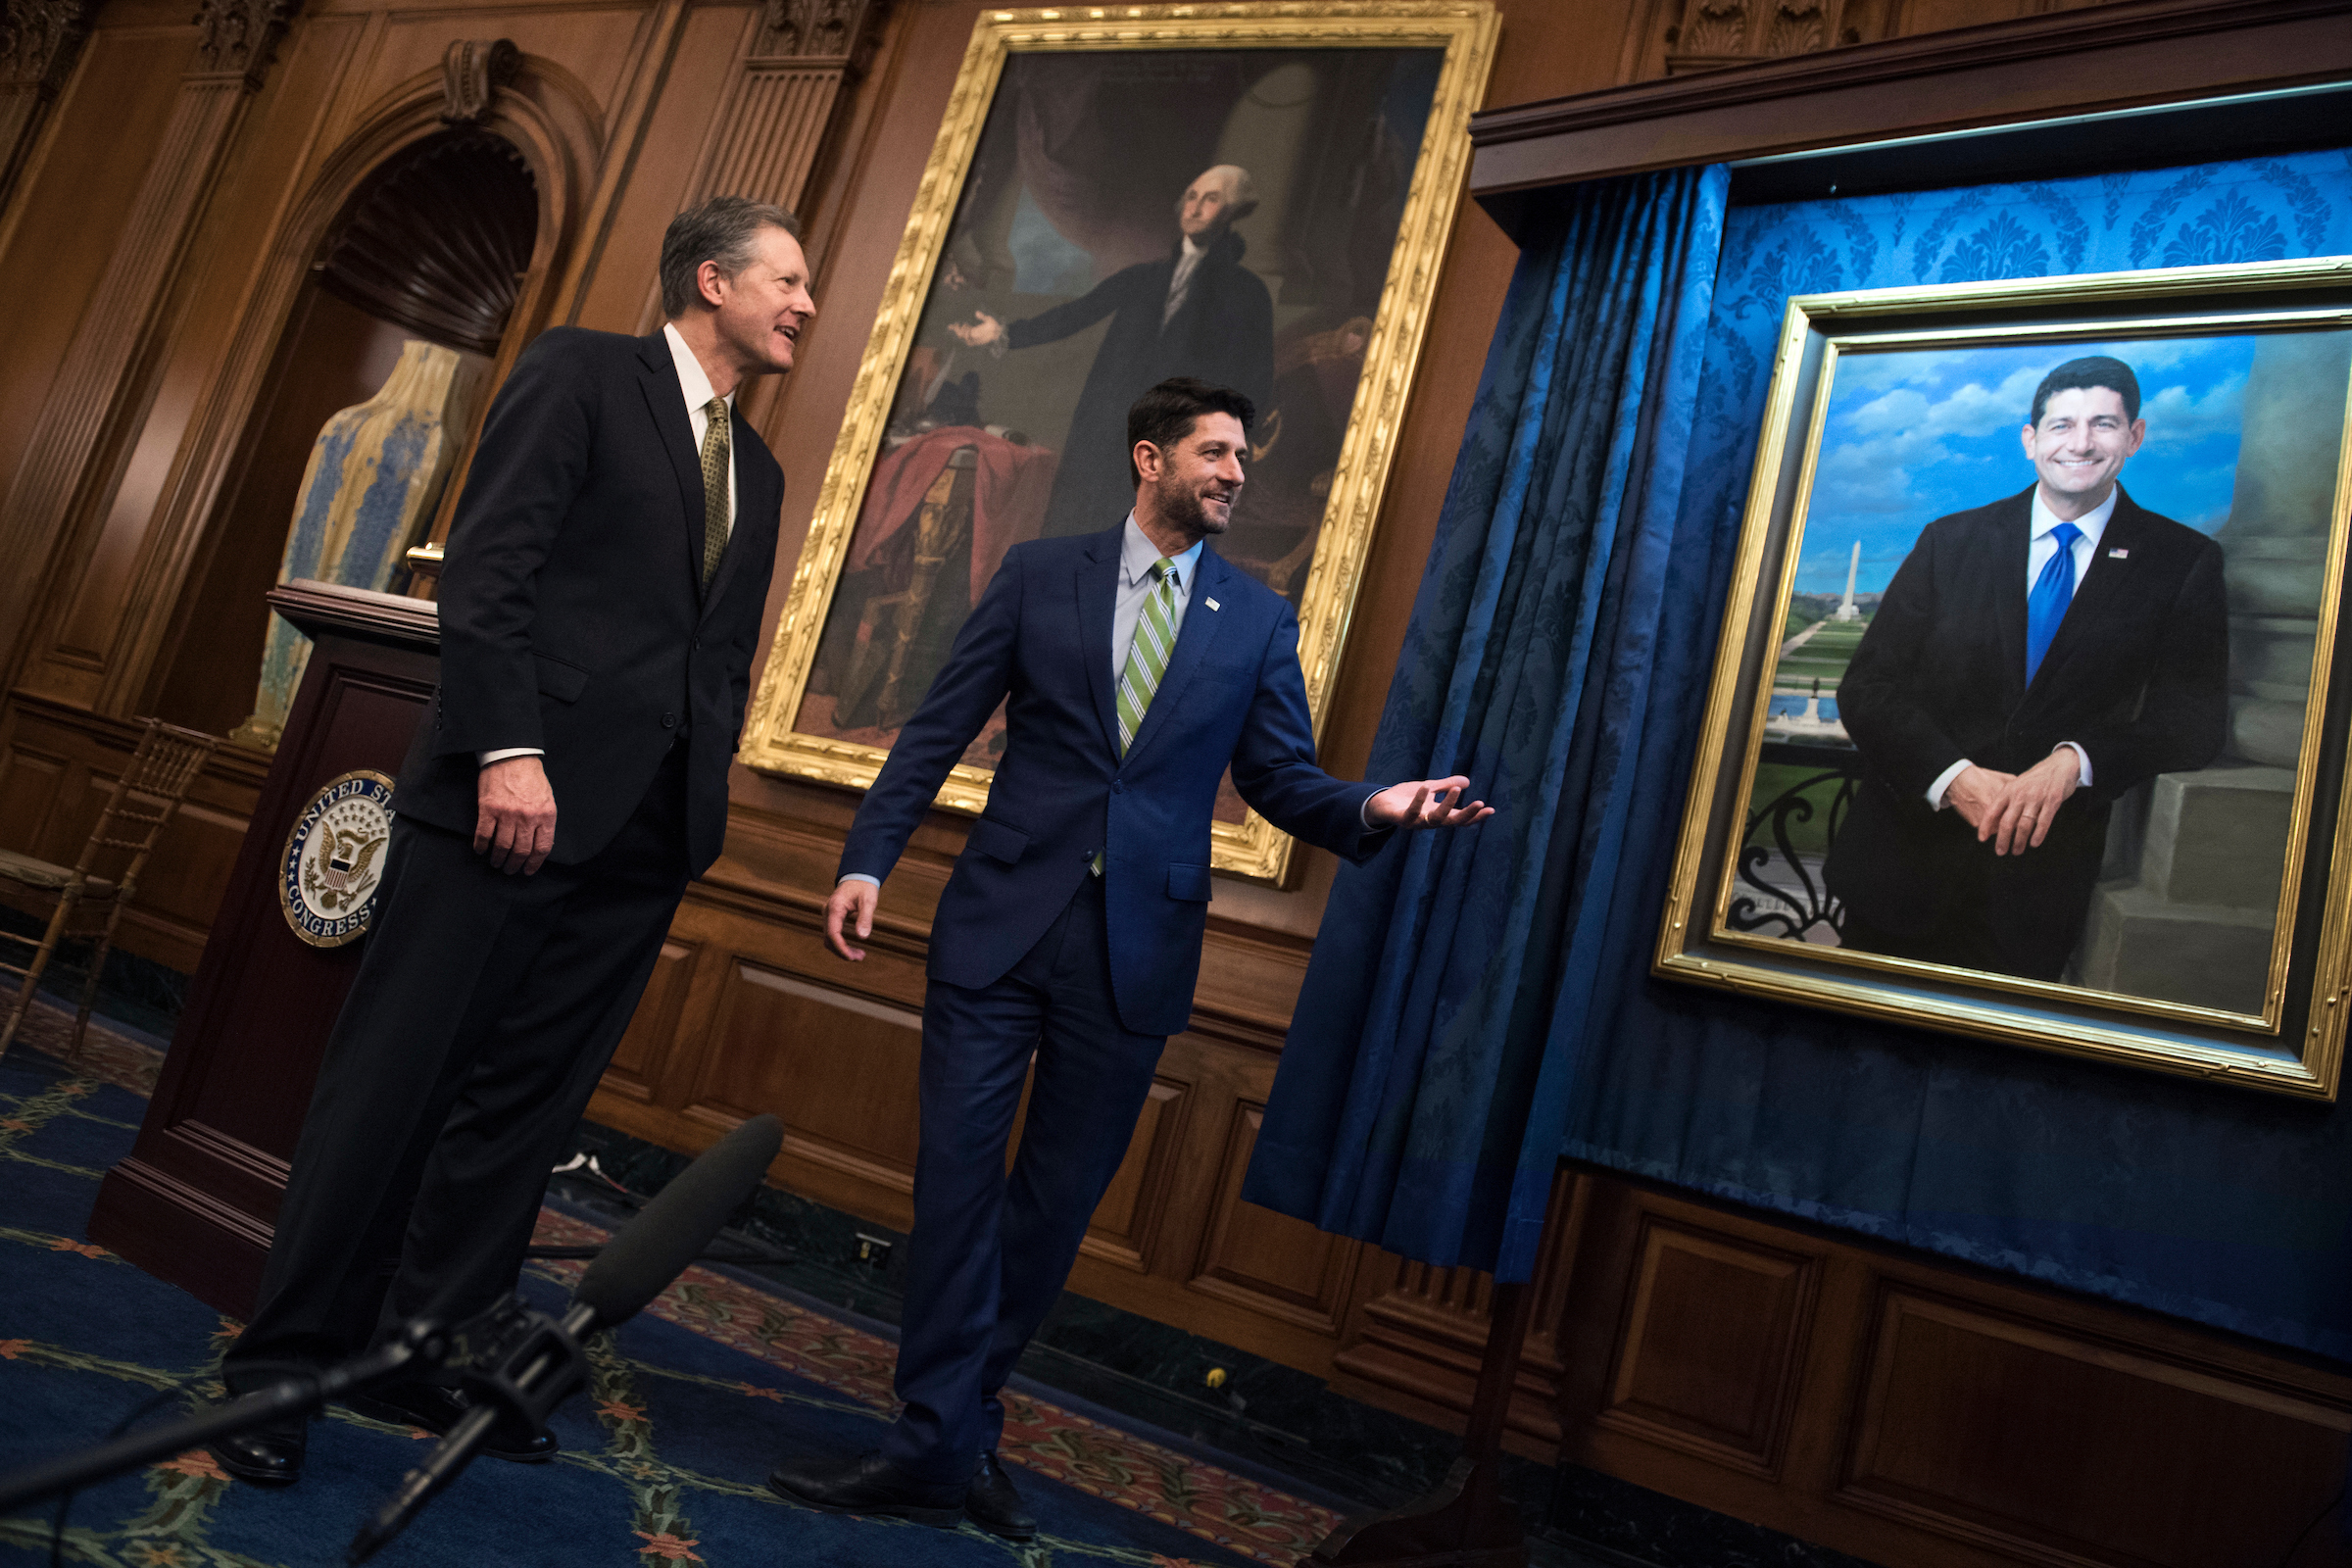 UNITED STATES - NOVEMBER 29: Speaker Paul Ryan, R-Wis., along with his brother, Stan, attends the unveiling of his House Budget Committee chairman portrait in the Capitol on November 29, 2018. The portrait was painted by Minnesota artist Leslie Bowman. (Photo By Tom Williams/CQ Roll Call)